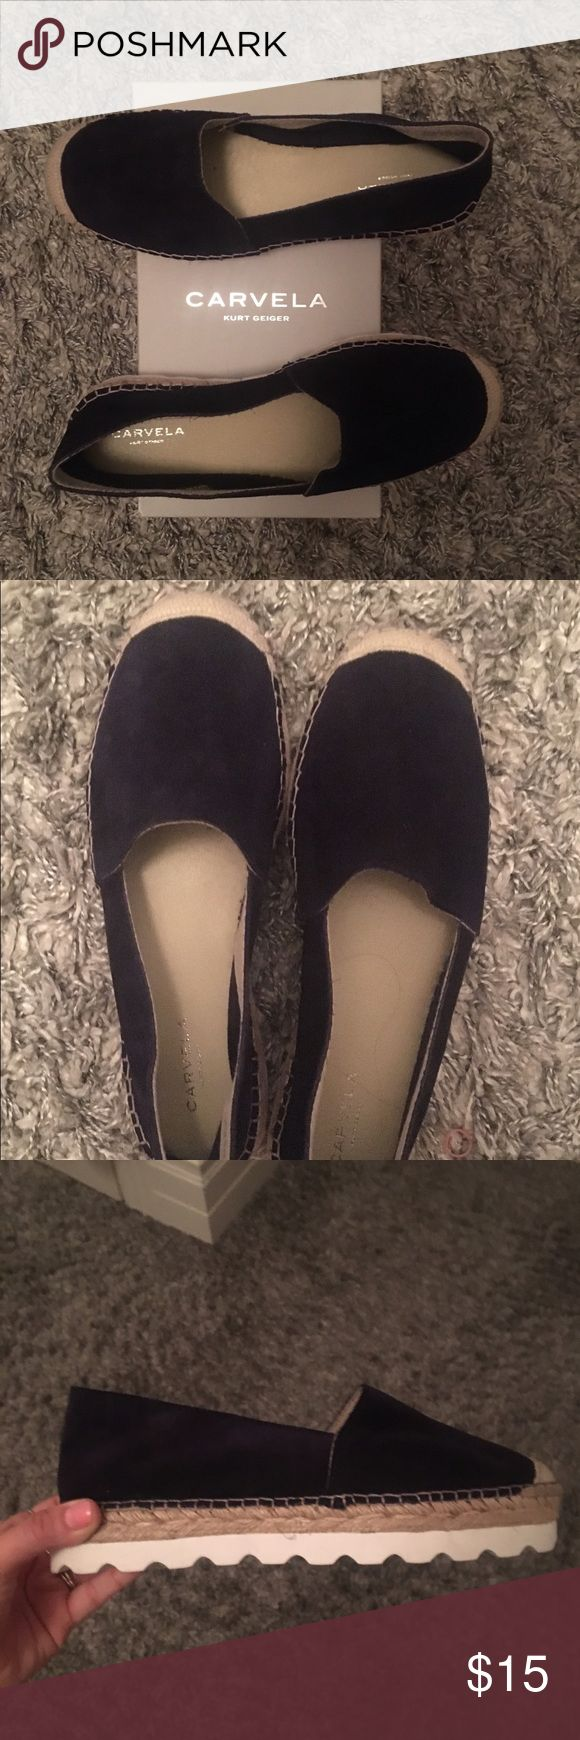 Carvela by Kurt Geiger espadrilles BRAND NEW Stretchy so they can fit size 9-10. (Says 40 on box but the run a little small) These navy blue espadrille sandals have never been worn! They sent me the wrong size and wouldn't let me return! They are too big on me as you can see in the picture but they are in absolutely perfect condition and have never been worn. Made by very famous European designer. Kurt Geiger Shoes Espadrilles